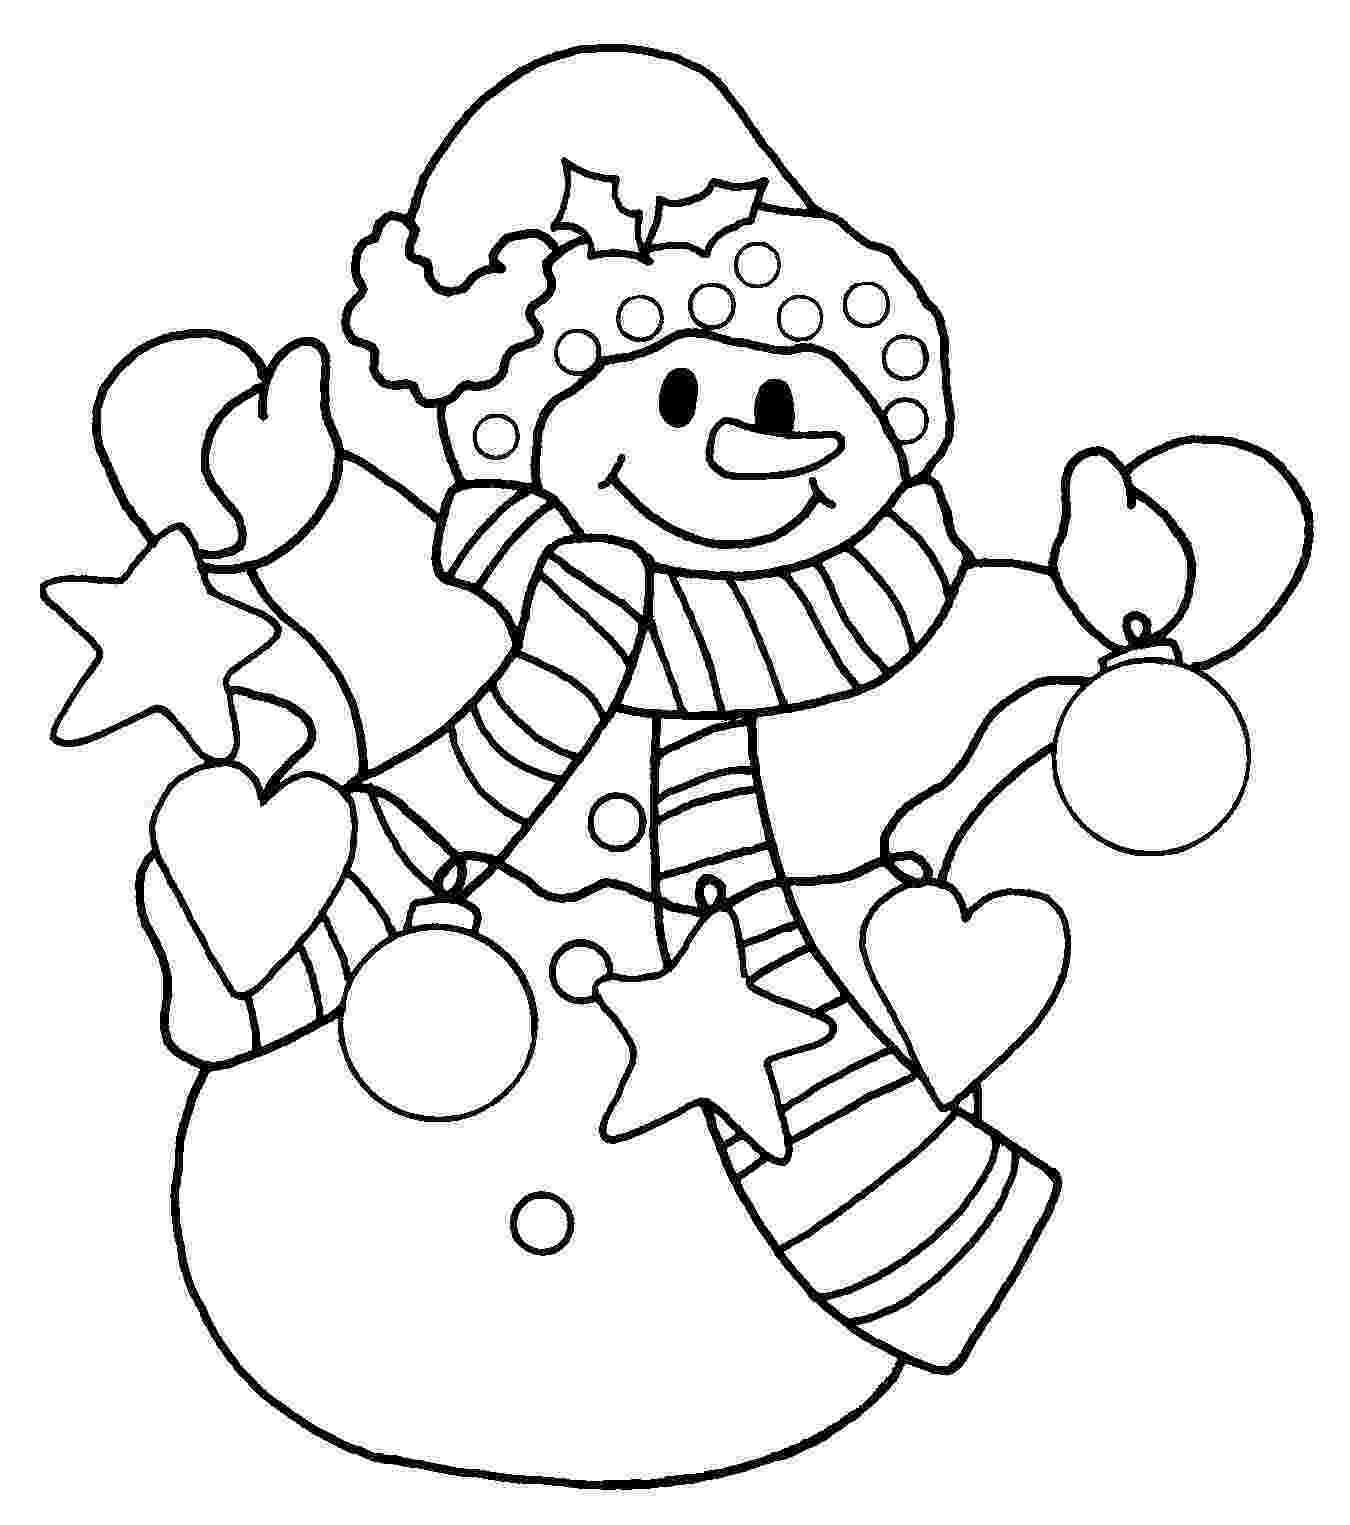 printable coloring pages snowman dz doodles digital stamps oodles of doodles news freebie printable snowman coloring pages